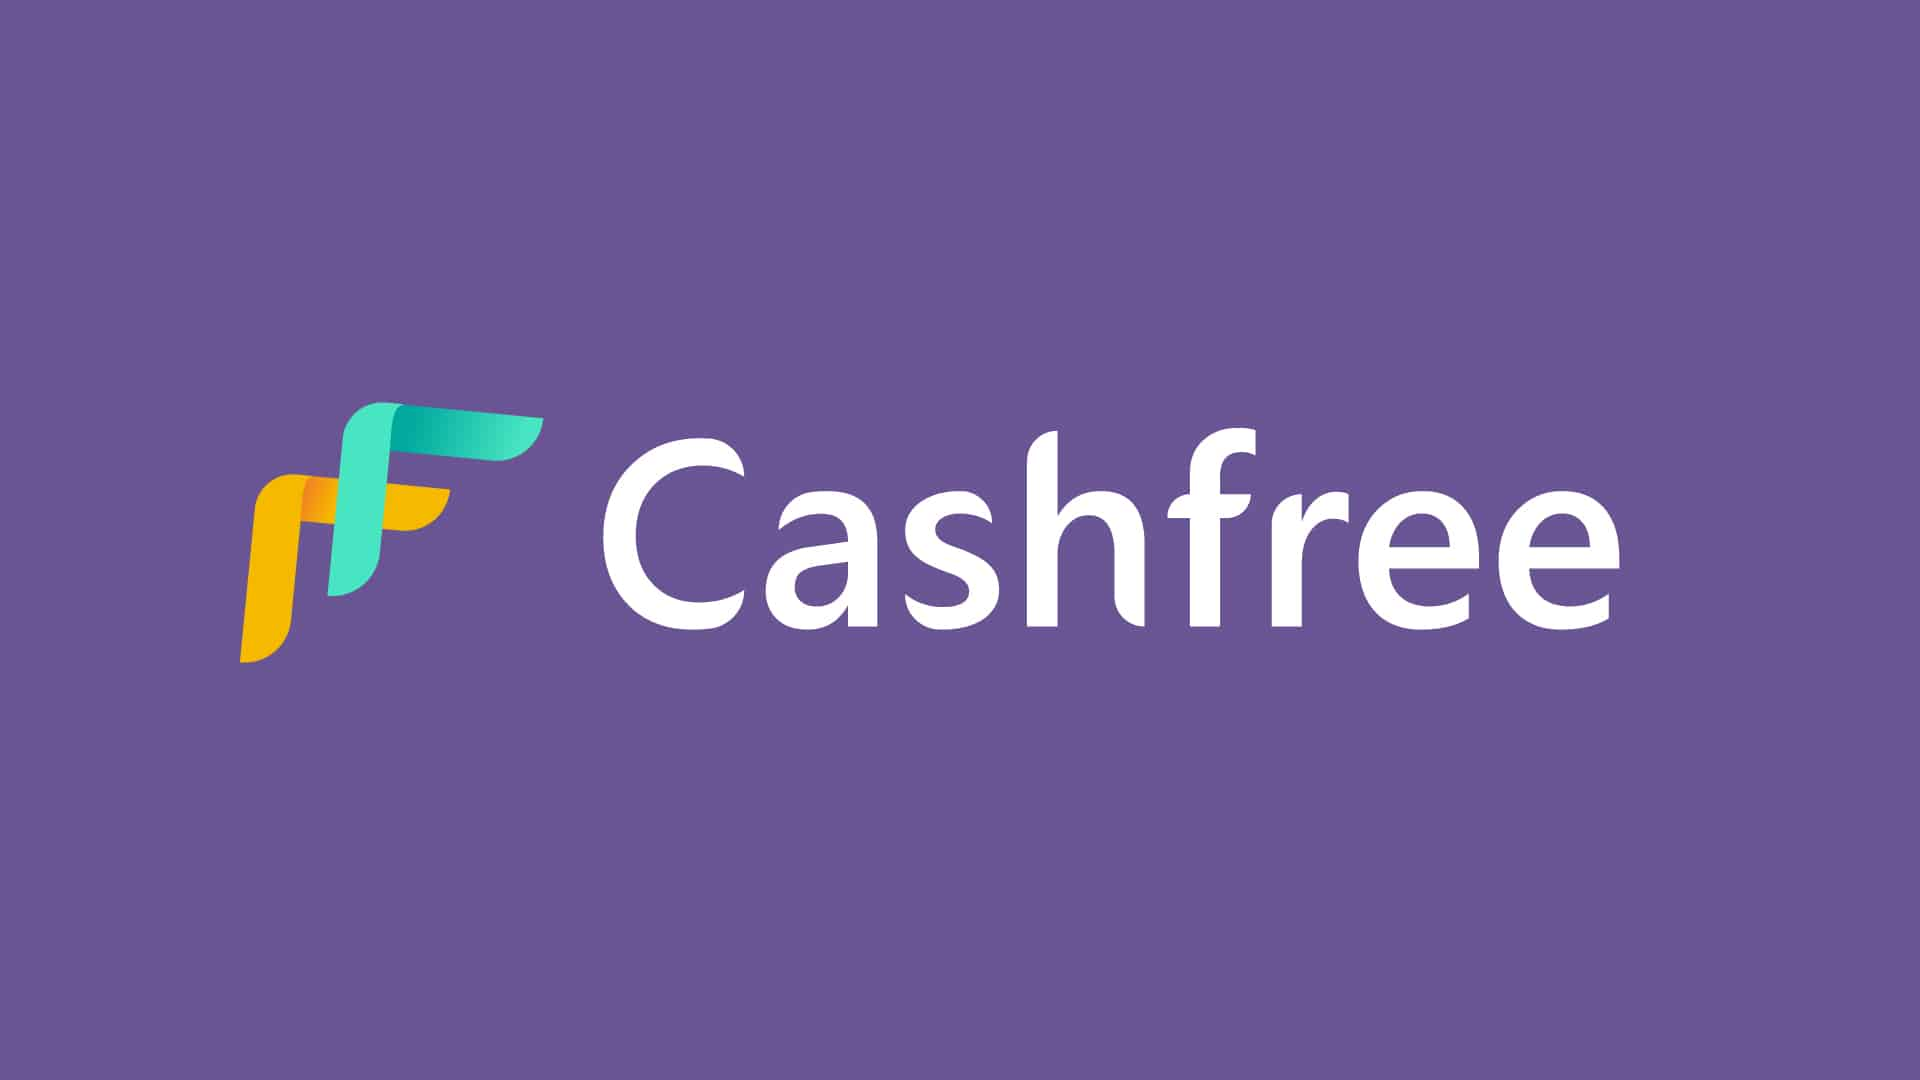 Cashfree launches E-commerce Suite to simplify digital payments for the next billion e-consumers